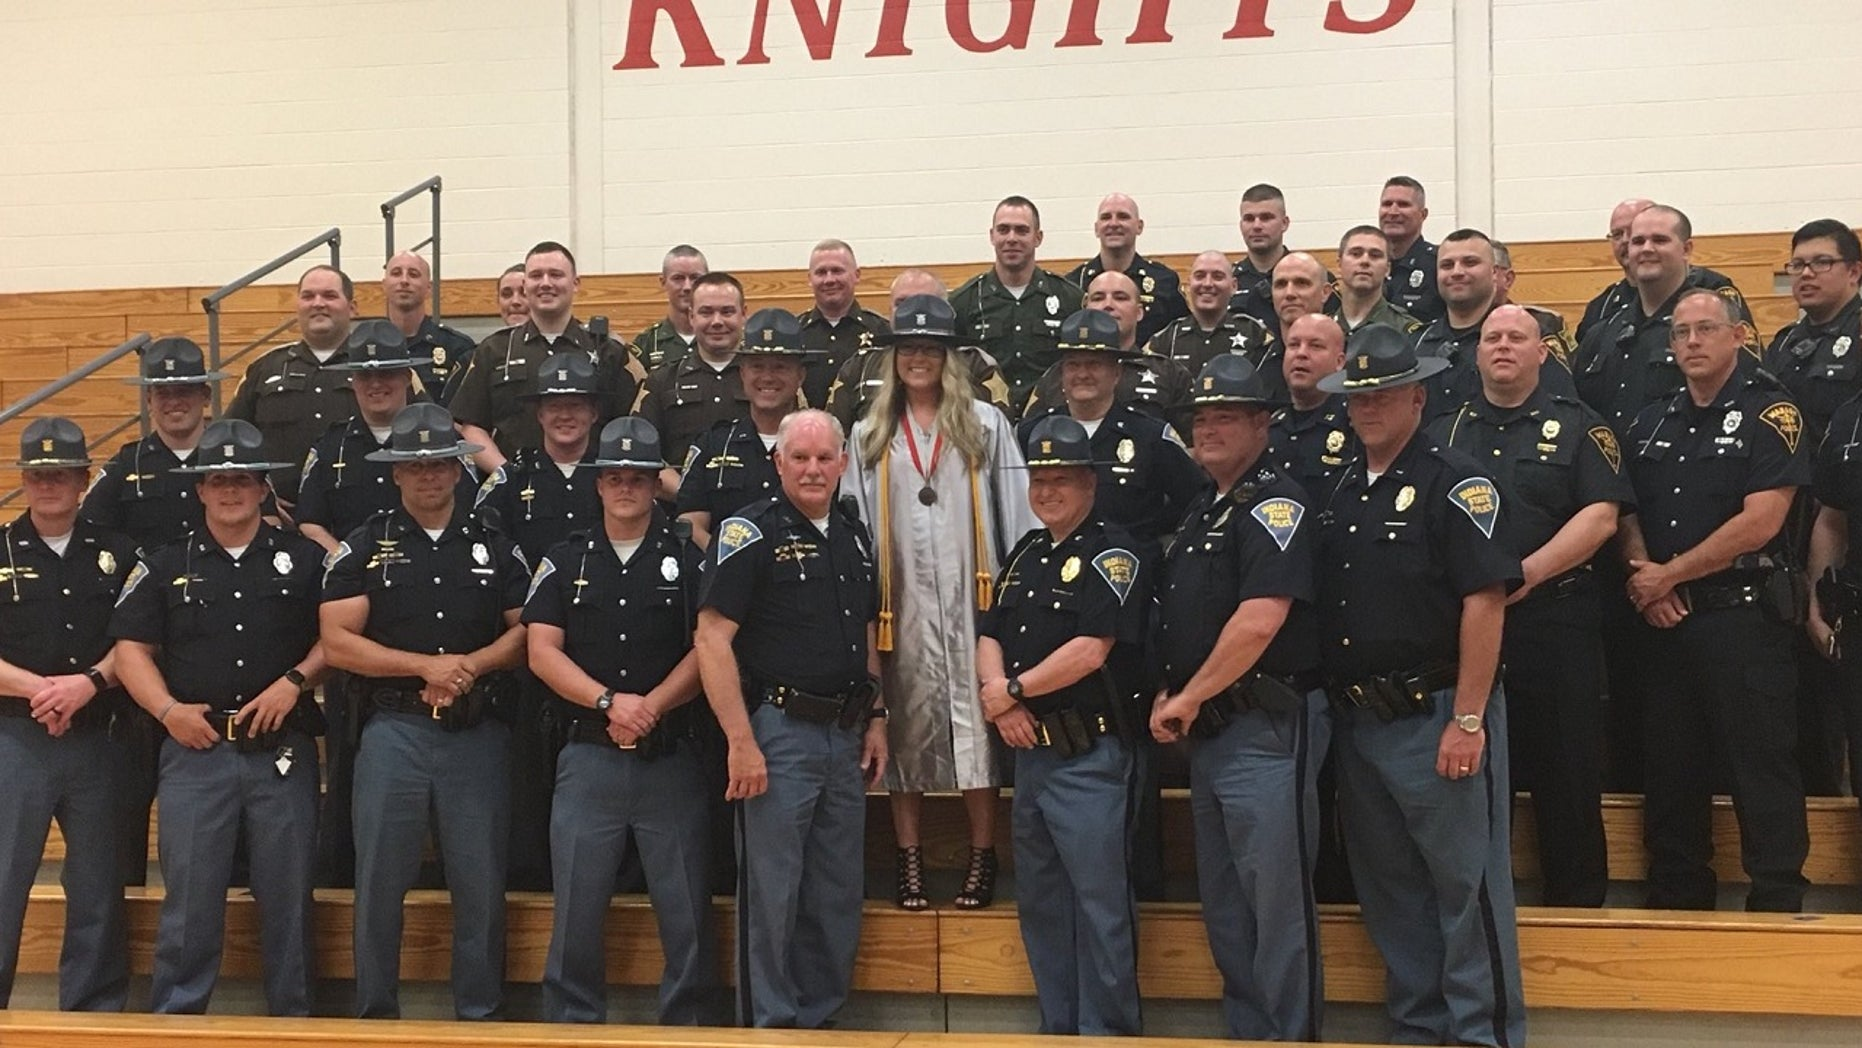 Lauren Rich had 39 Indiana police officers at her high school graduation on Saturday.